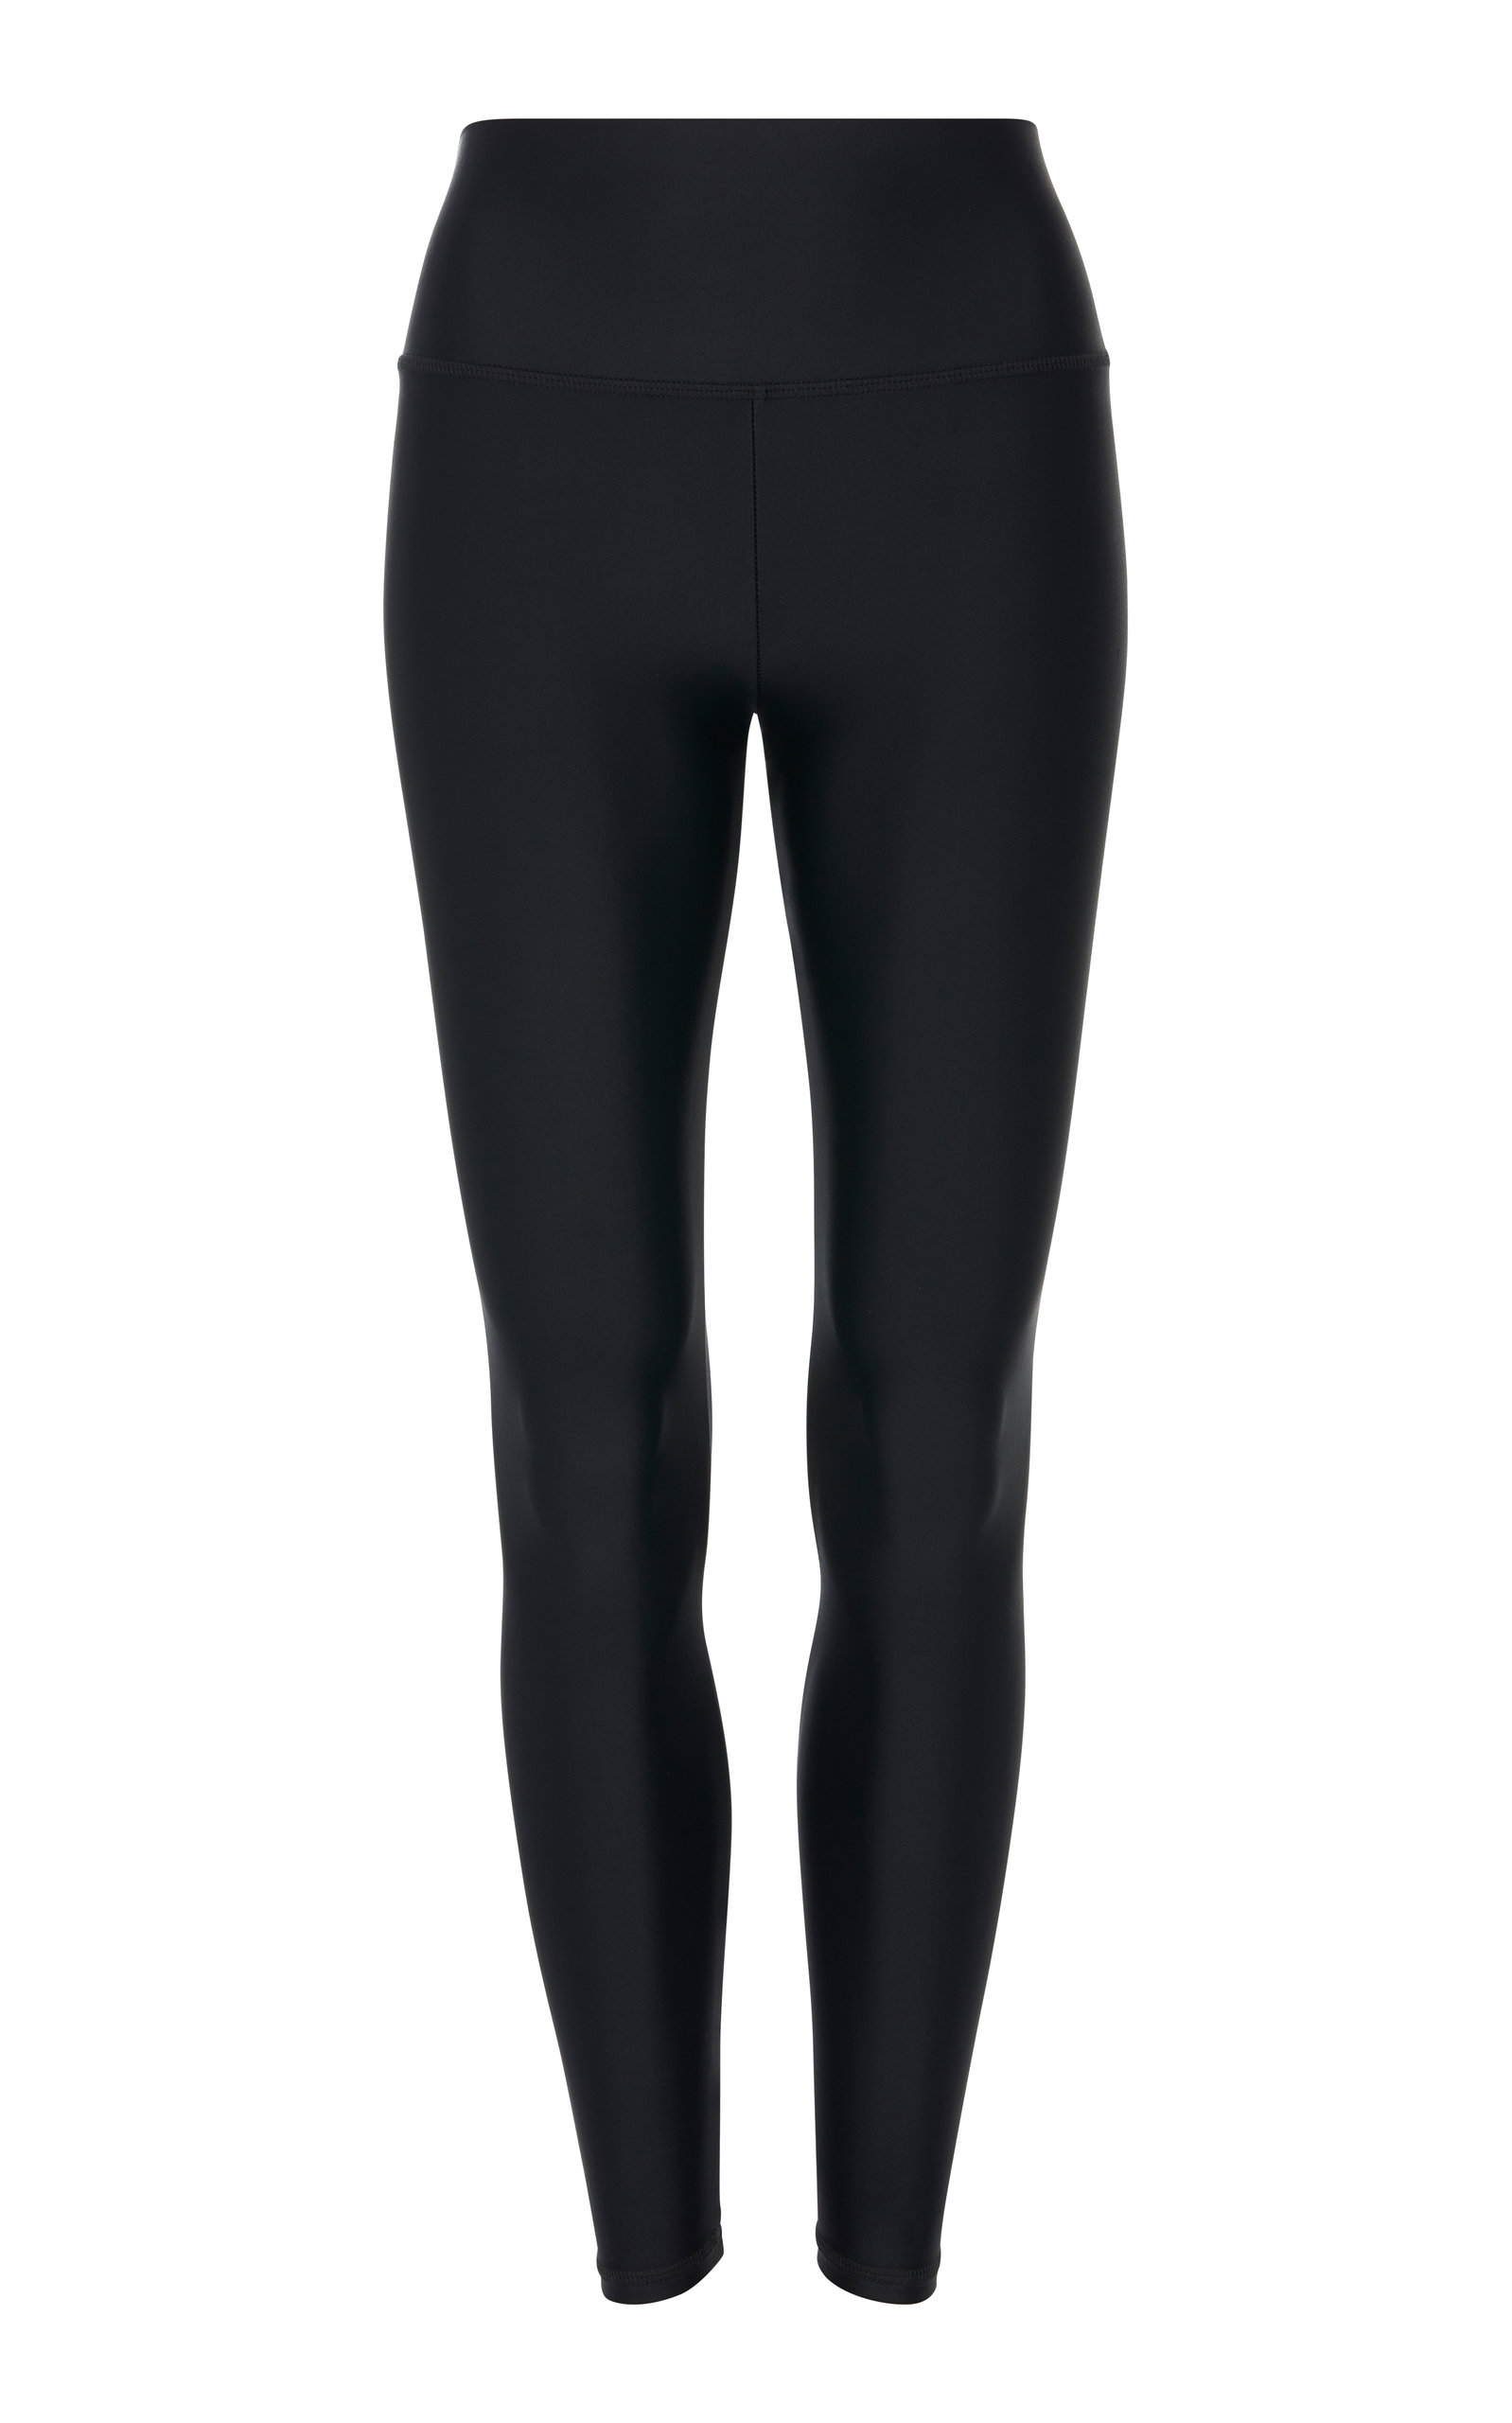 LANSTON LANDON HIGH WAISTED LEGGINGS